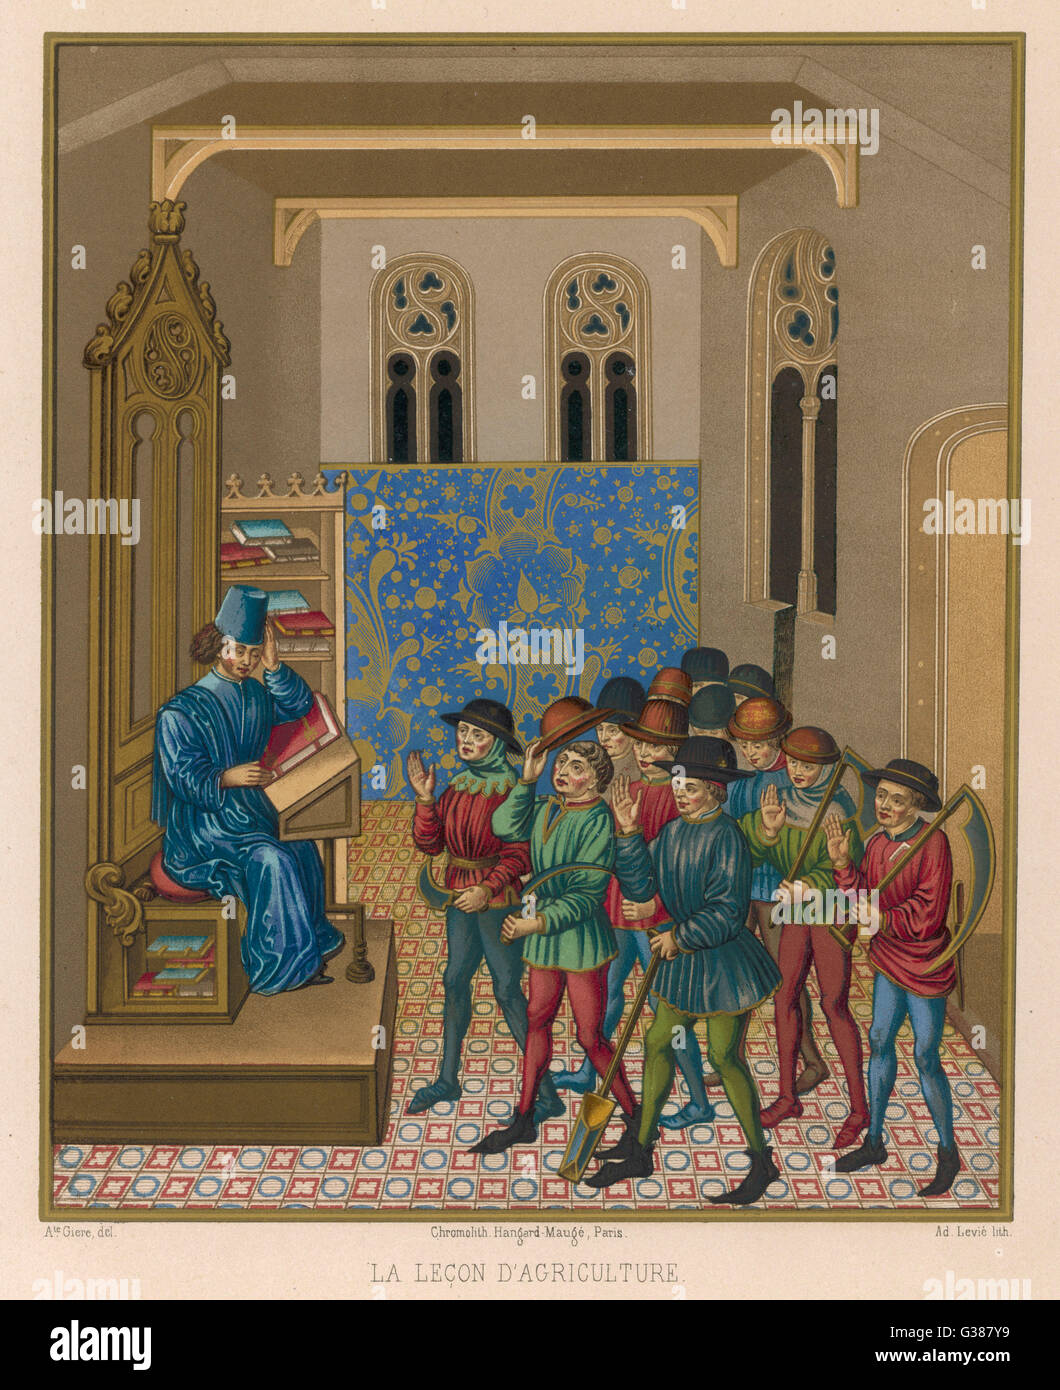 A group of farmworkers receive  instruction in agricultural  methods        Date: 15th century - Stock Image